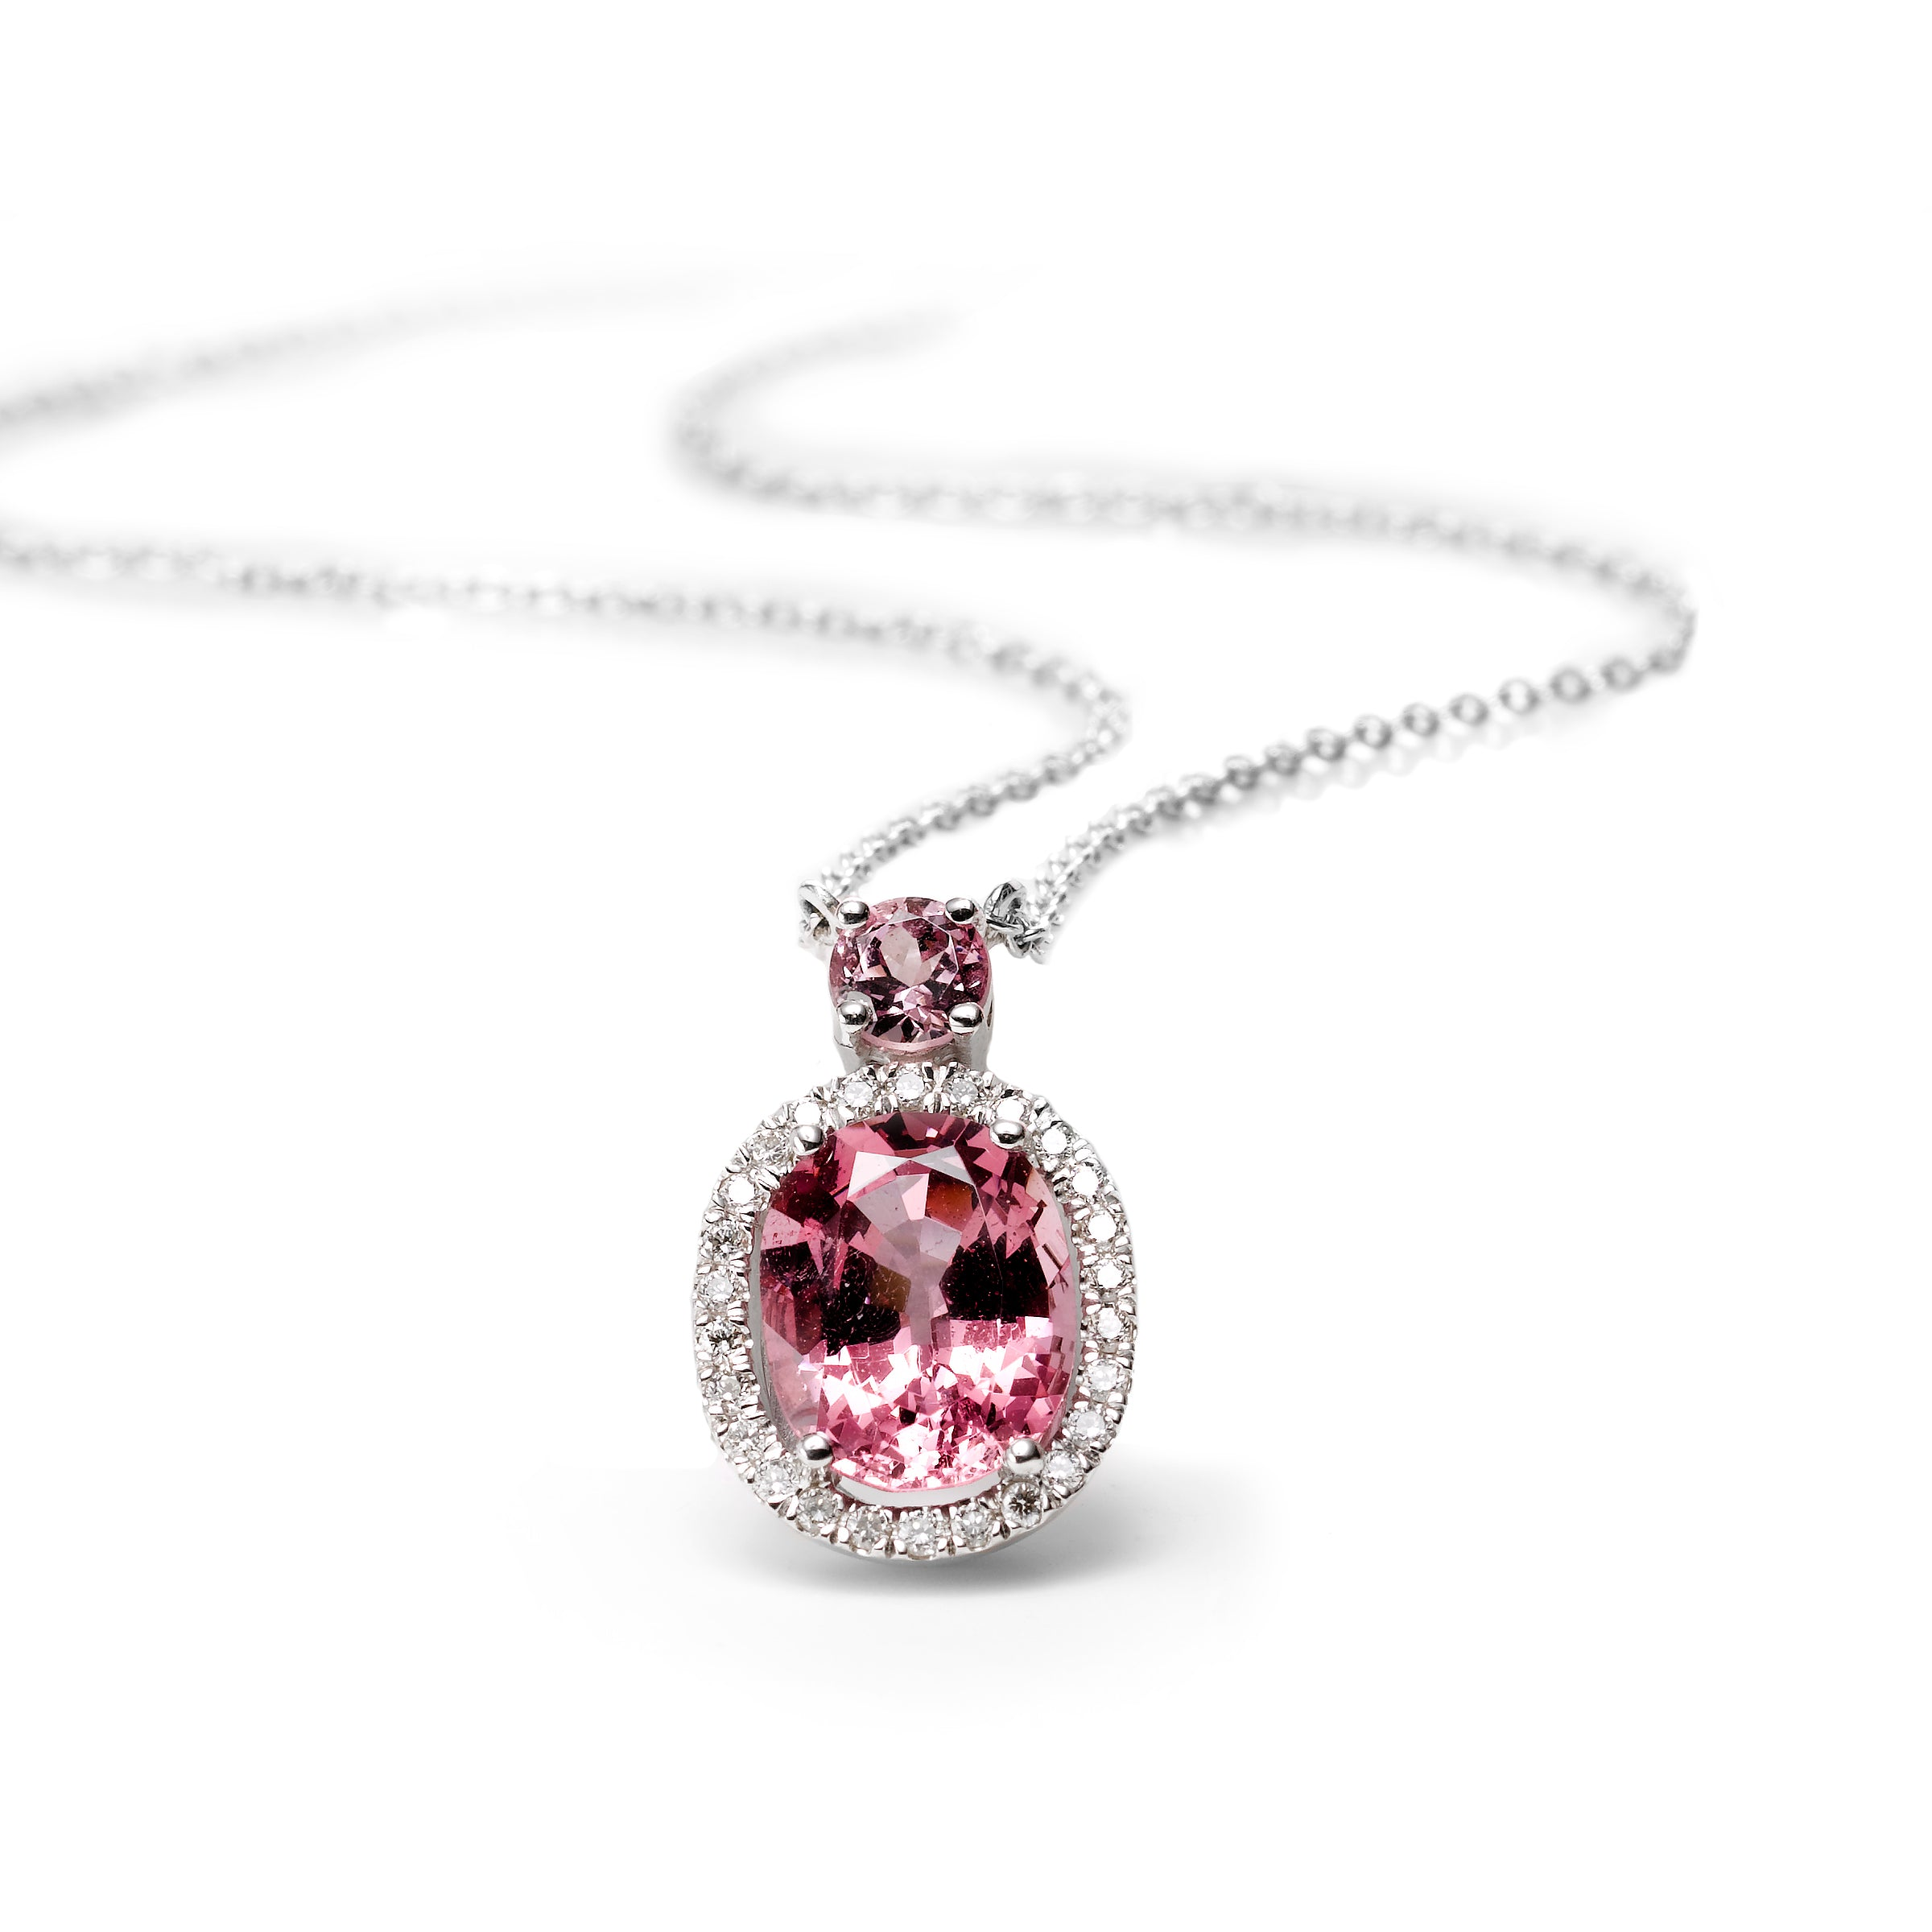 Oval Pink Spinel Pendant with Diamonds, 18K White Gold